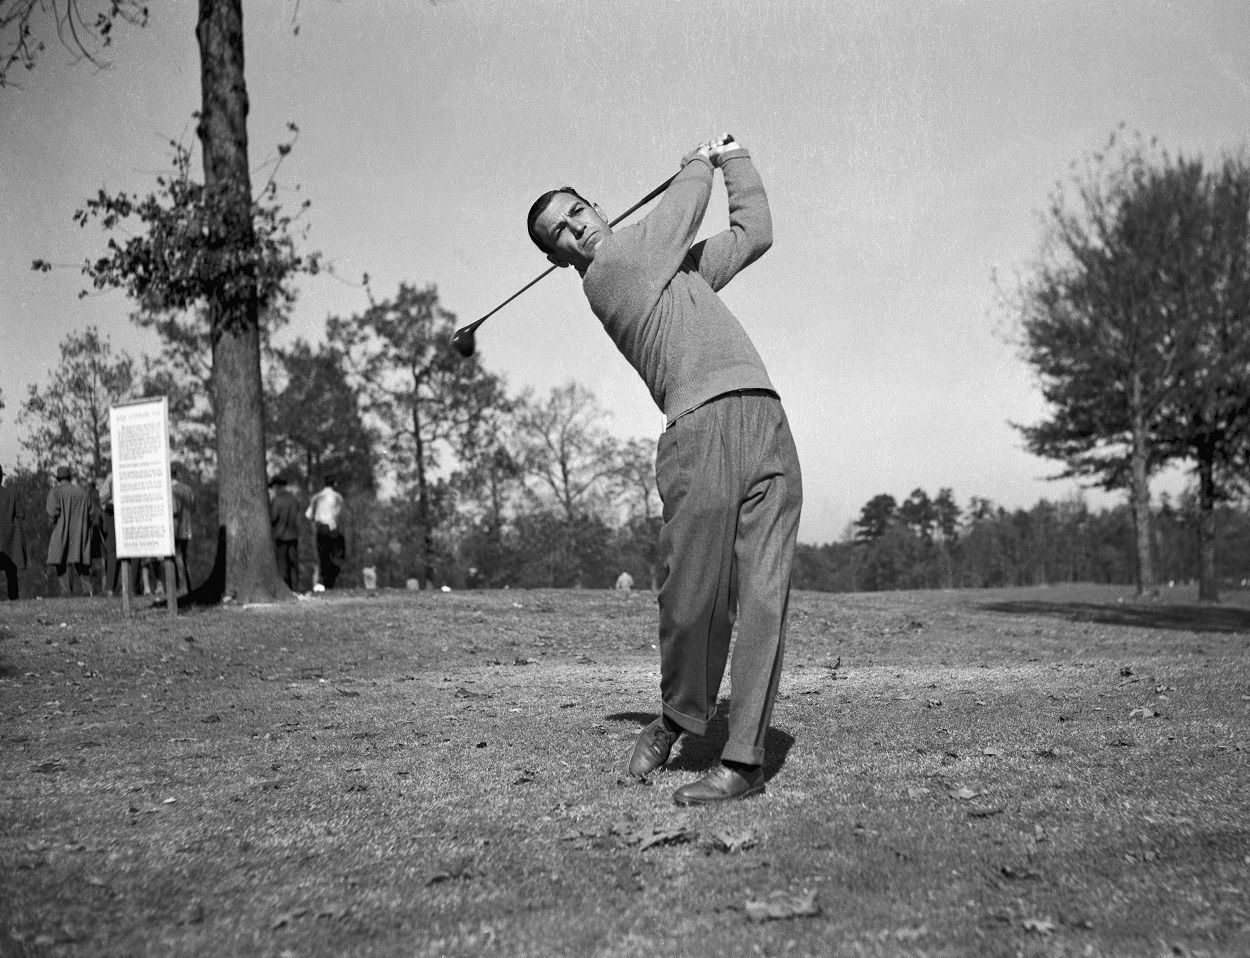 Ben Hogan at the 1950 U.S. Open